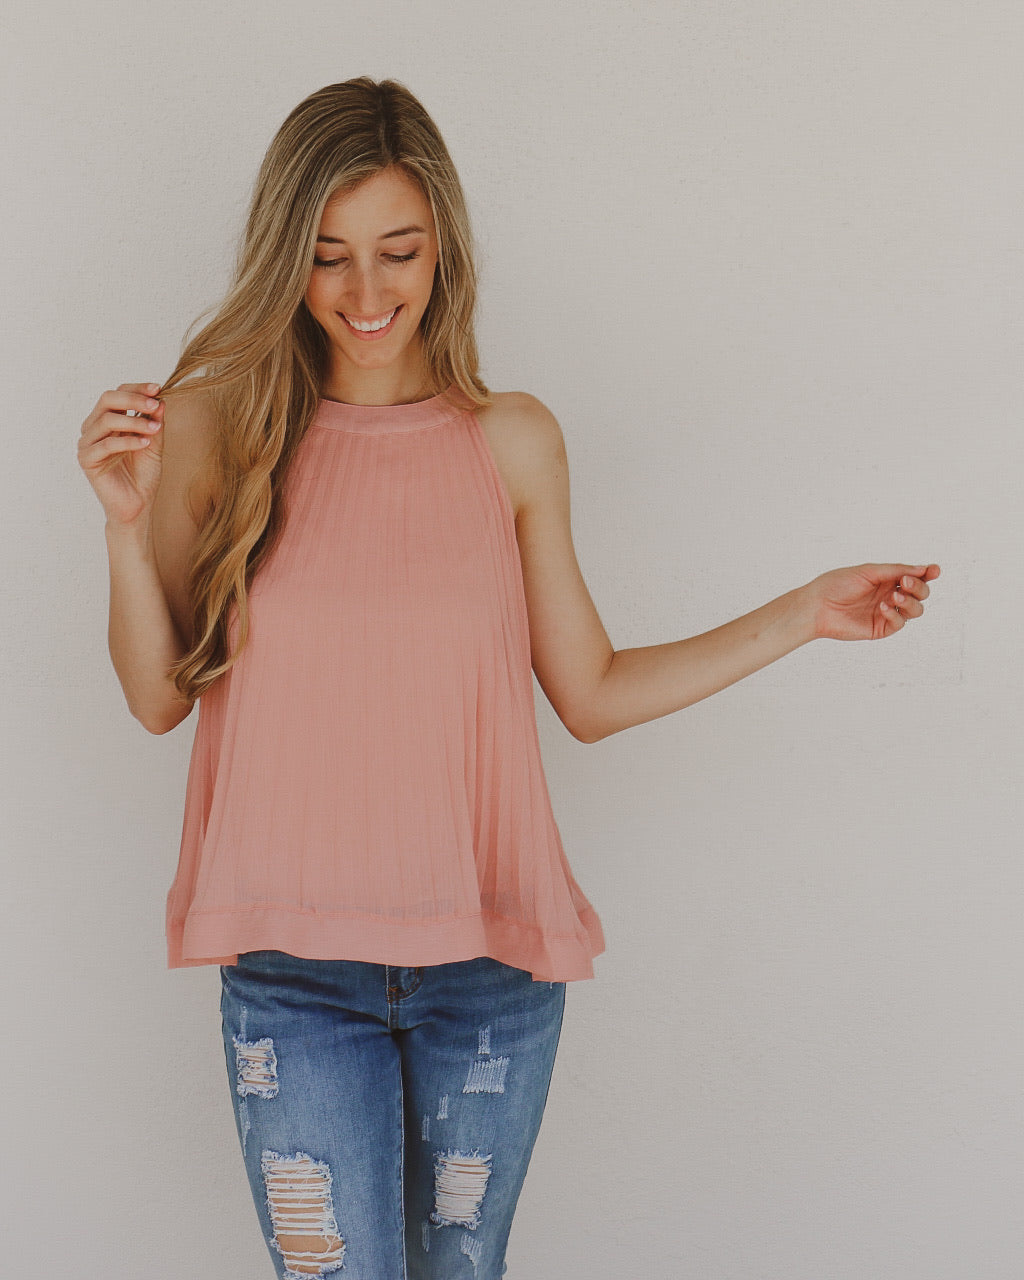 Serendipity Top in Rose